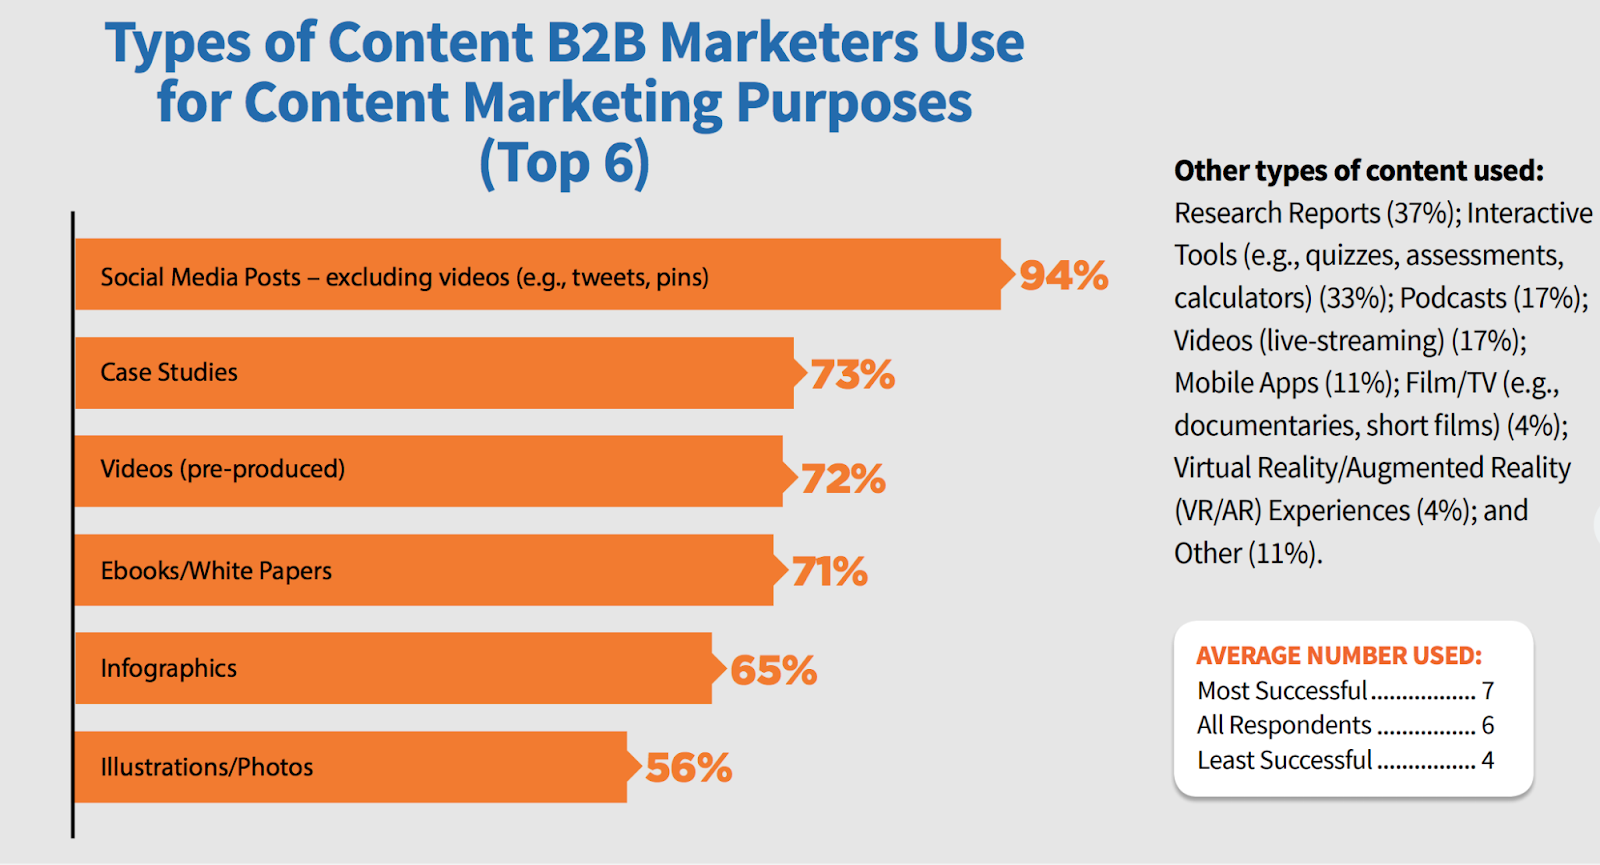 types_of_content_b2b_marketers_use_for_content_marketing_purposes_social_media_pposts_case_studies_video_ebooks_and_white_papers_infographics_illustrations_and_photos